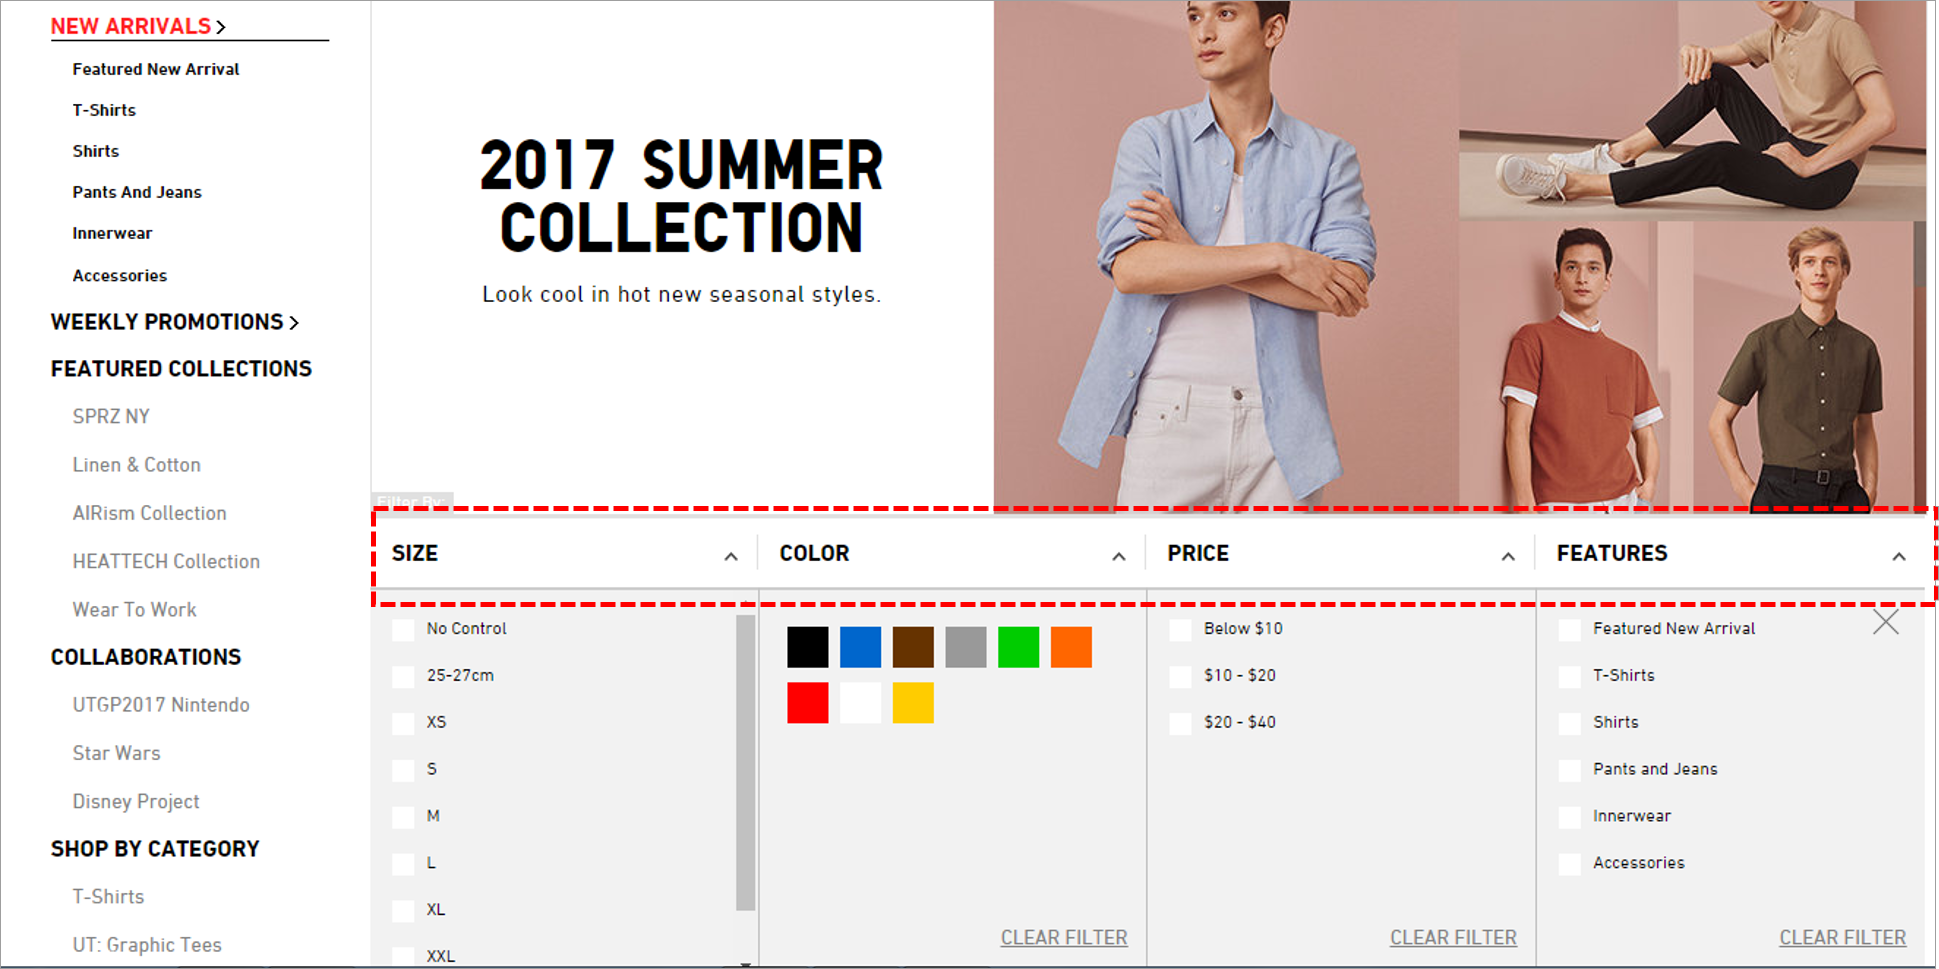 beautiful ecommerce website design